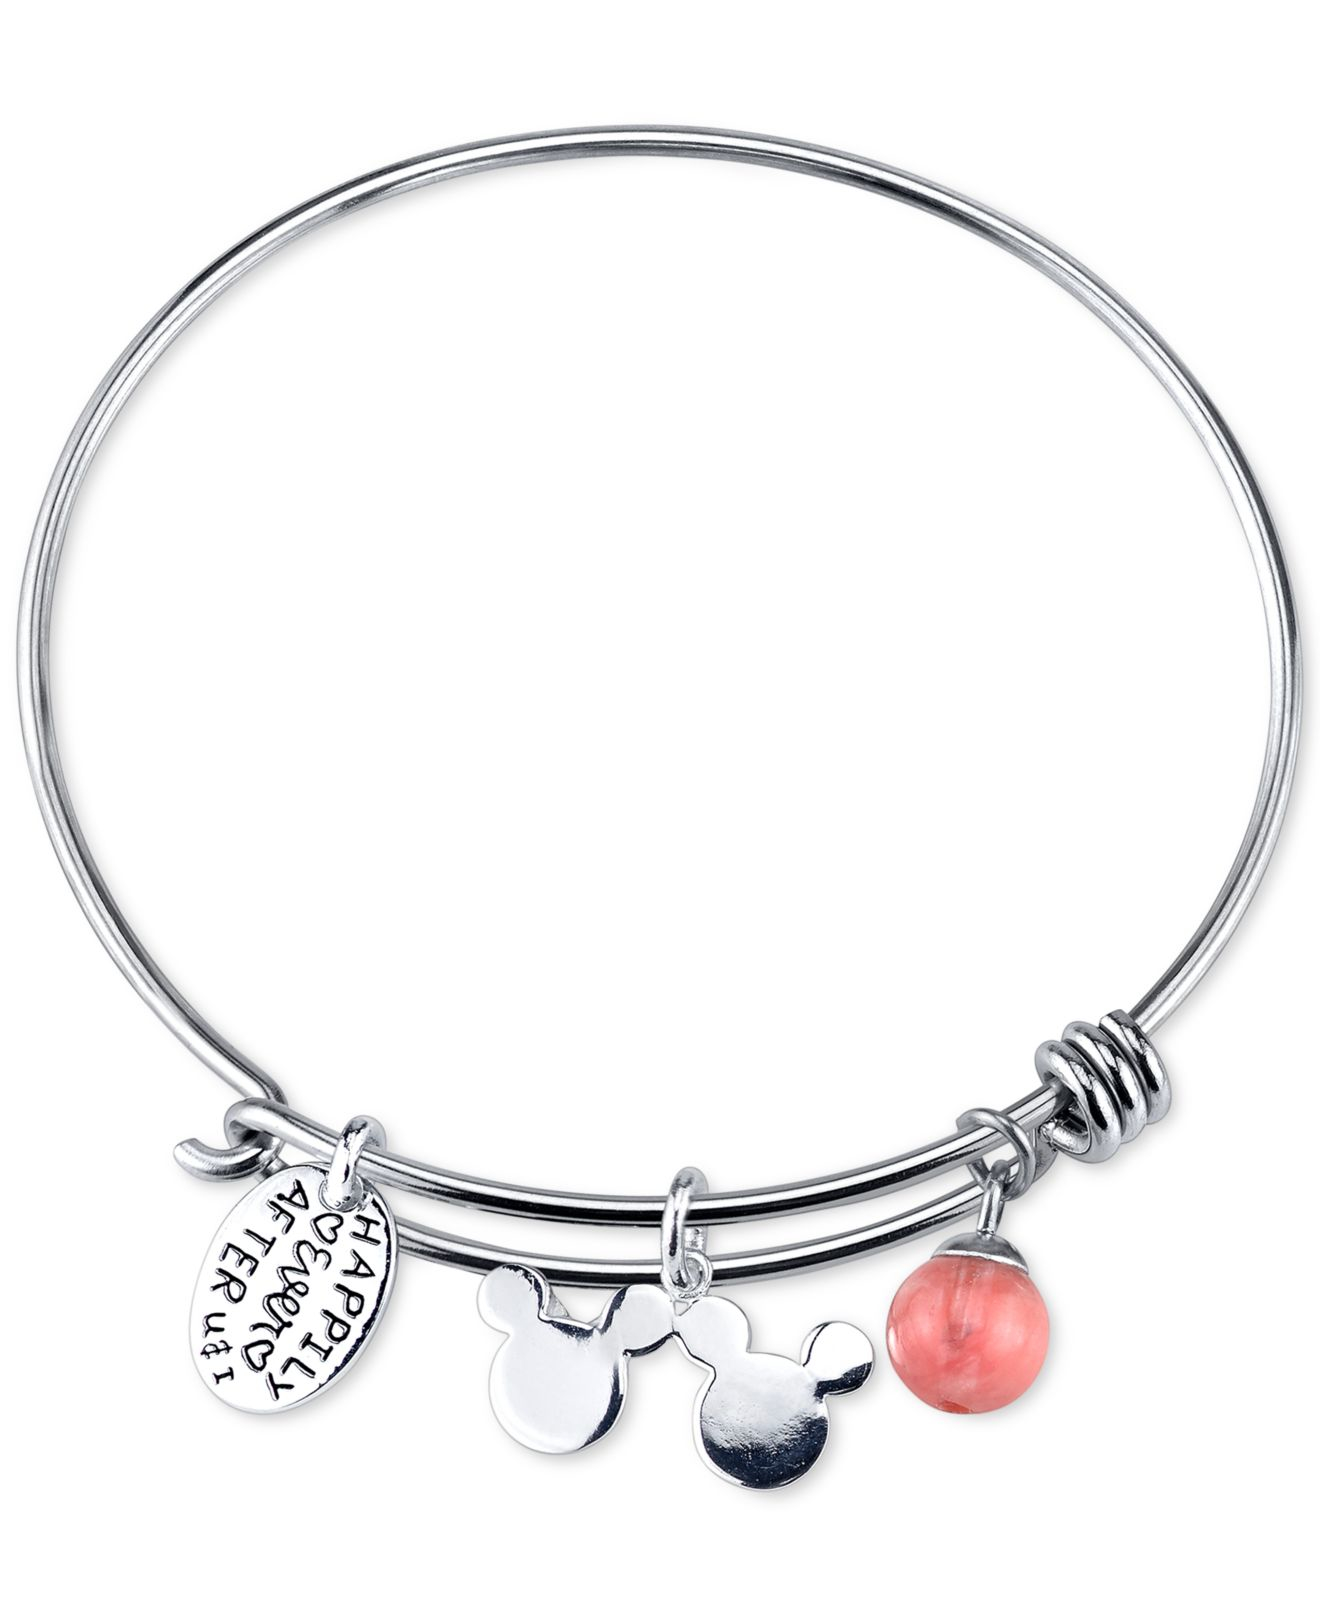 hand adjustable bracelet breast charm cancer medical survivor awareness bangles products stamped bangle